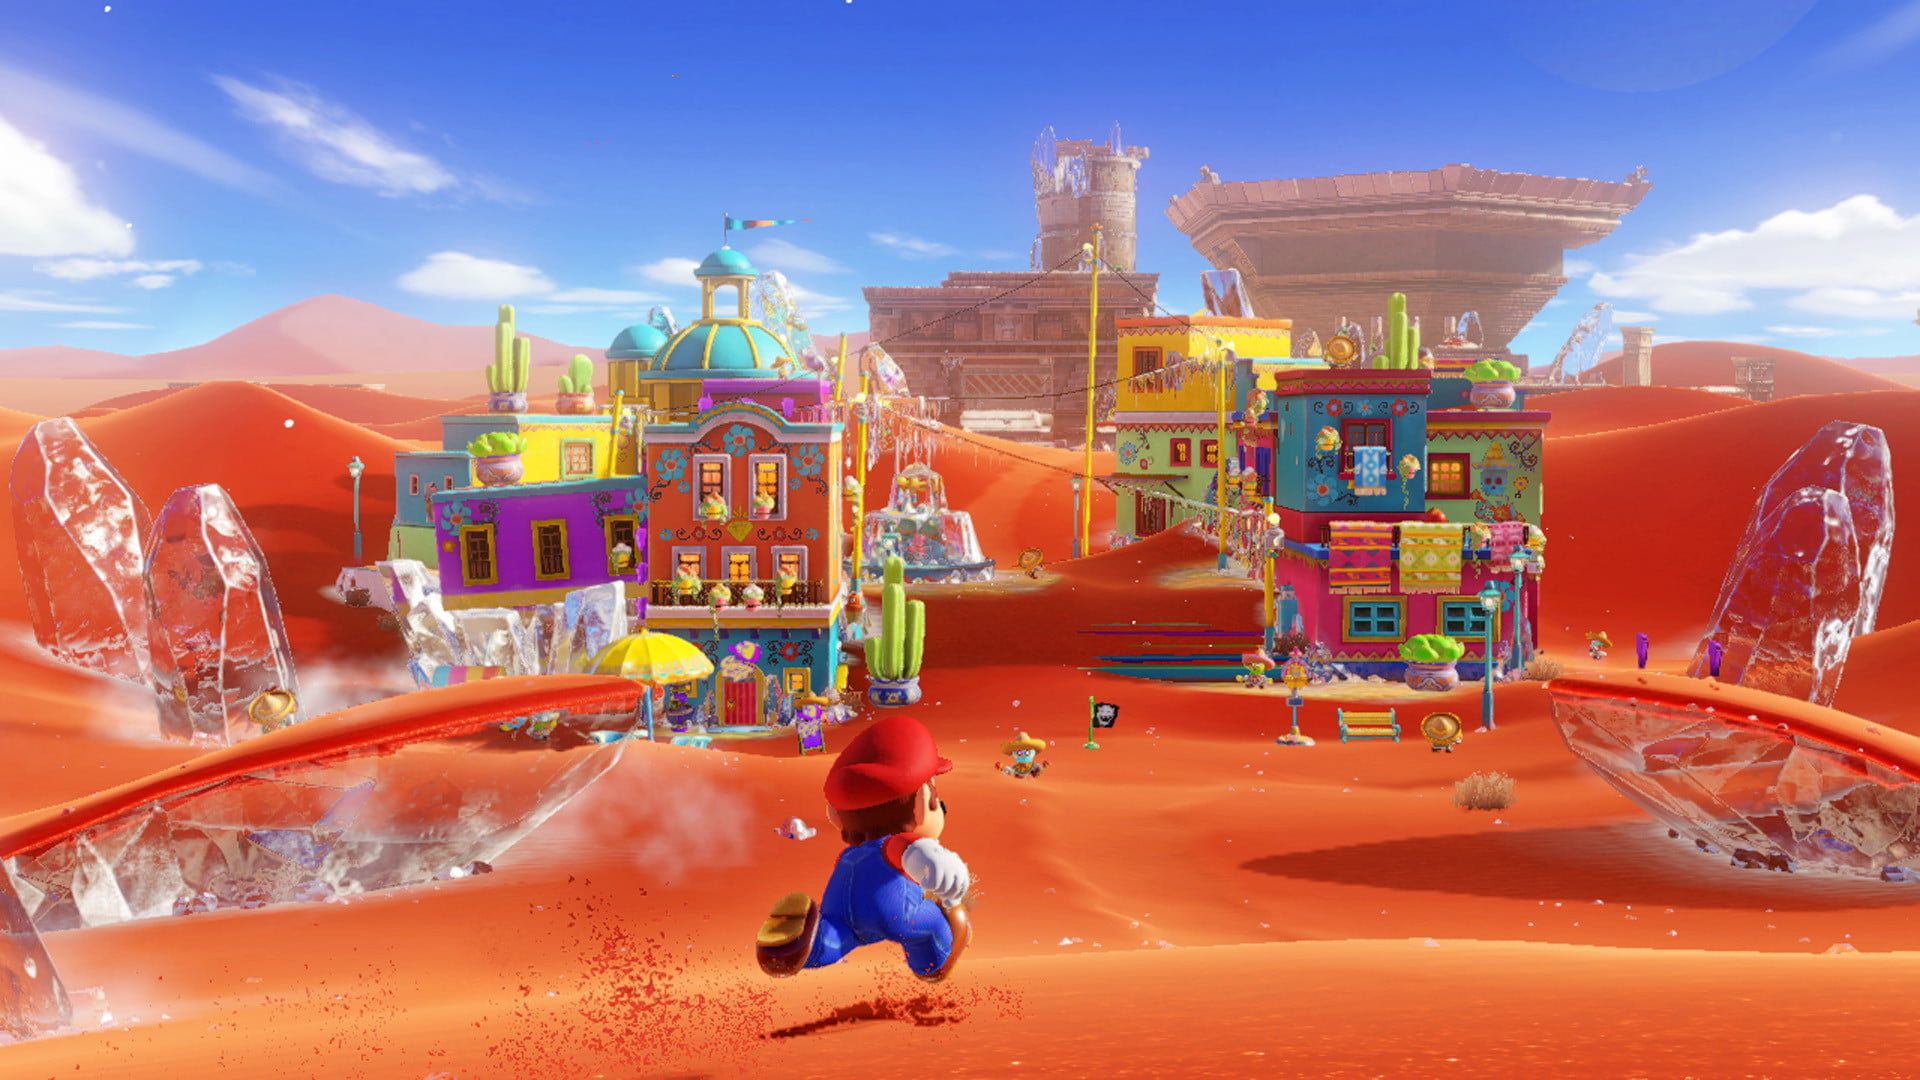 screenshot of Mario Odyssey's sand kingdom.